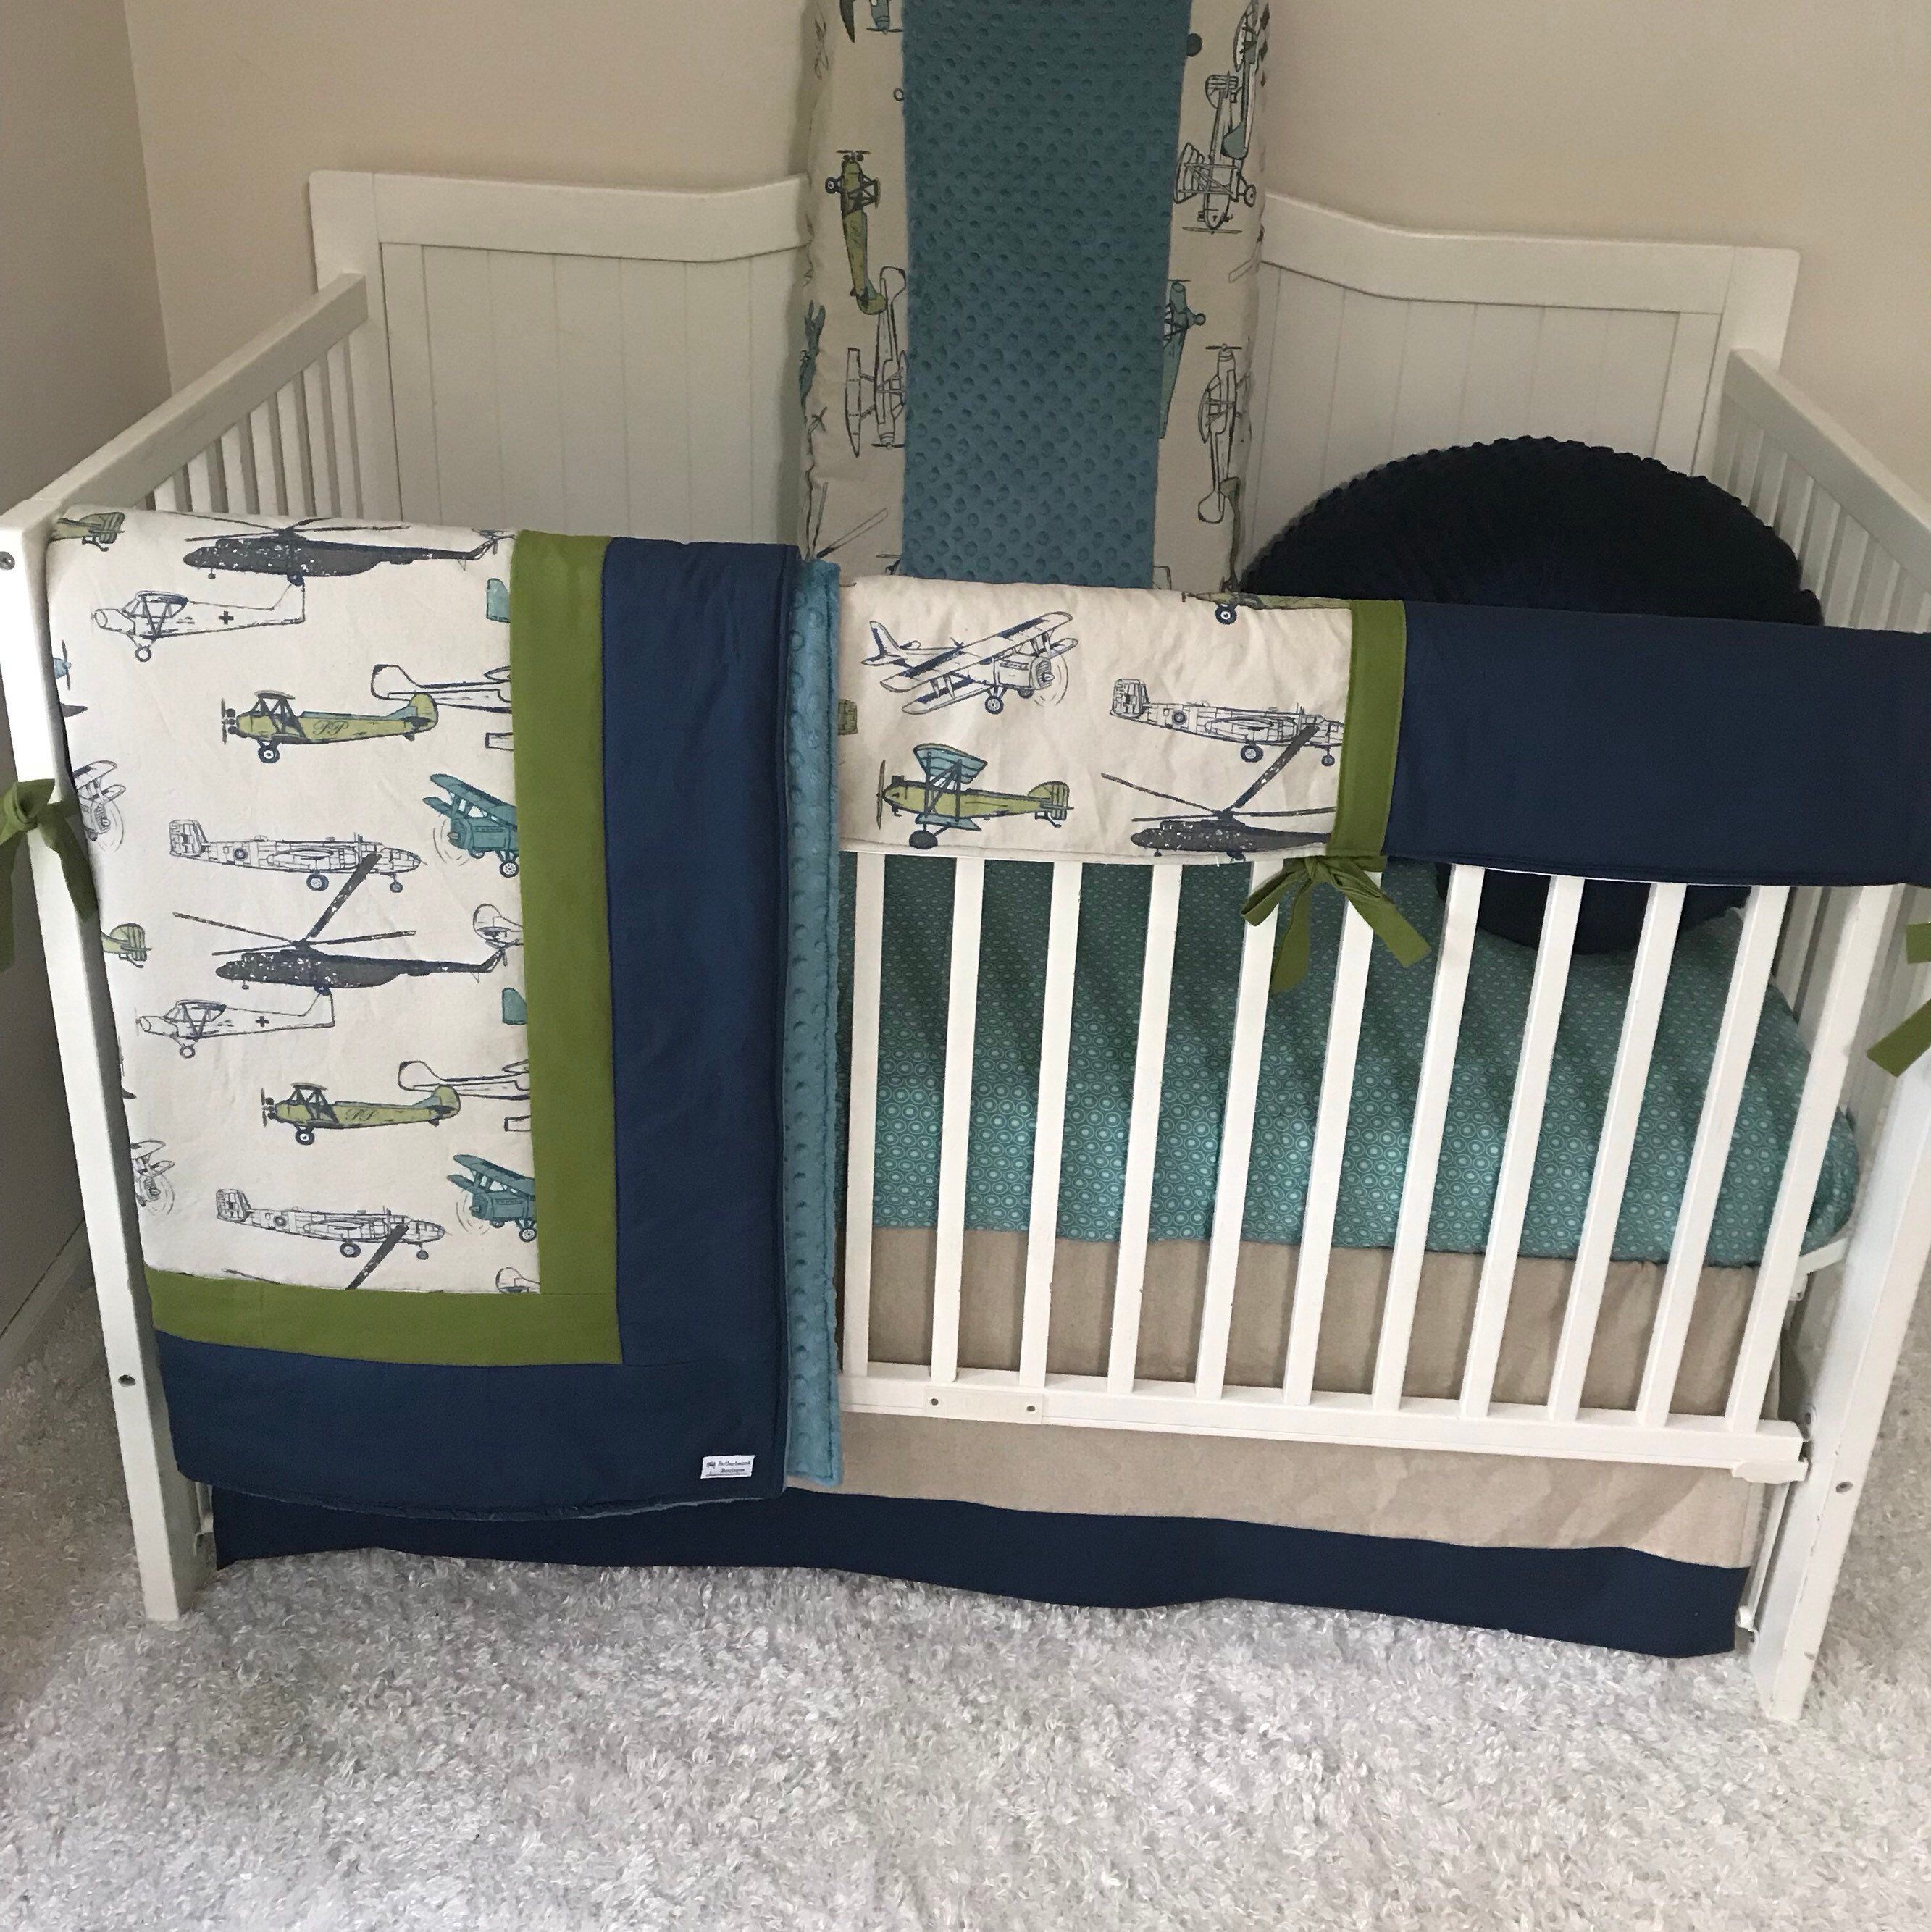 Excited To Share This Item From My Etsy Shop Baby Boy Crib Bedding Set Tan Linen Olive Green Navy Crib Sets For Boys Baby Boy Crib Sets Airplane Crib Bedding